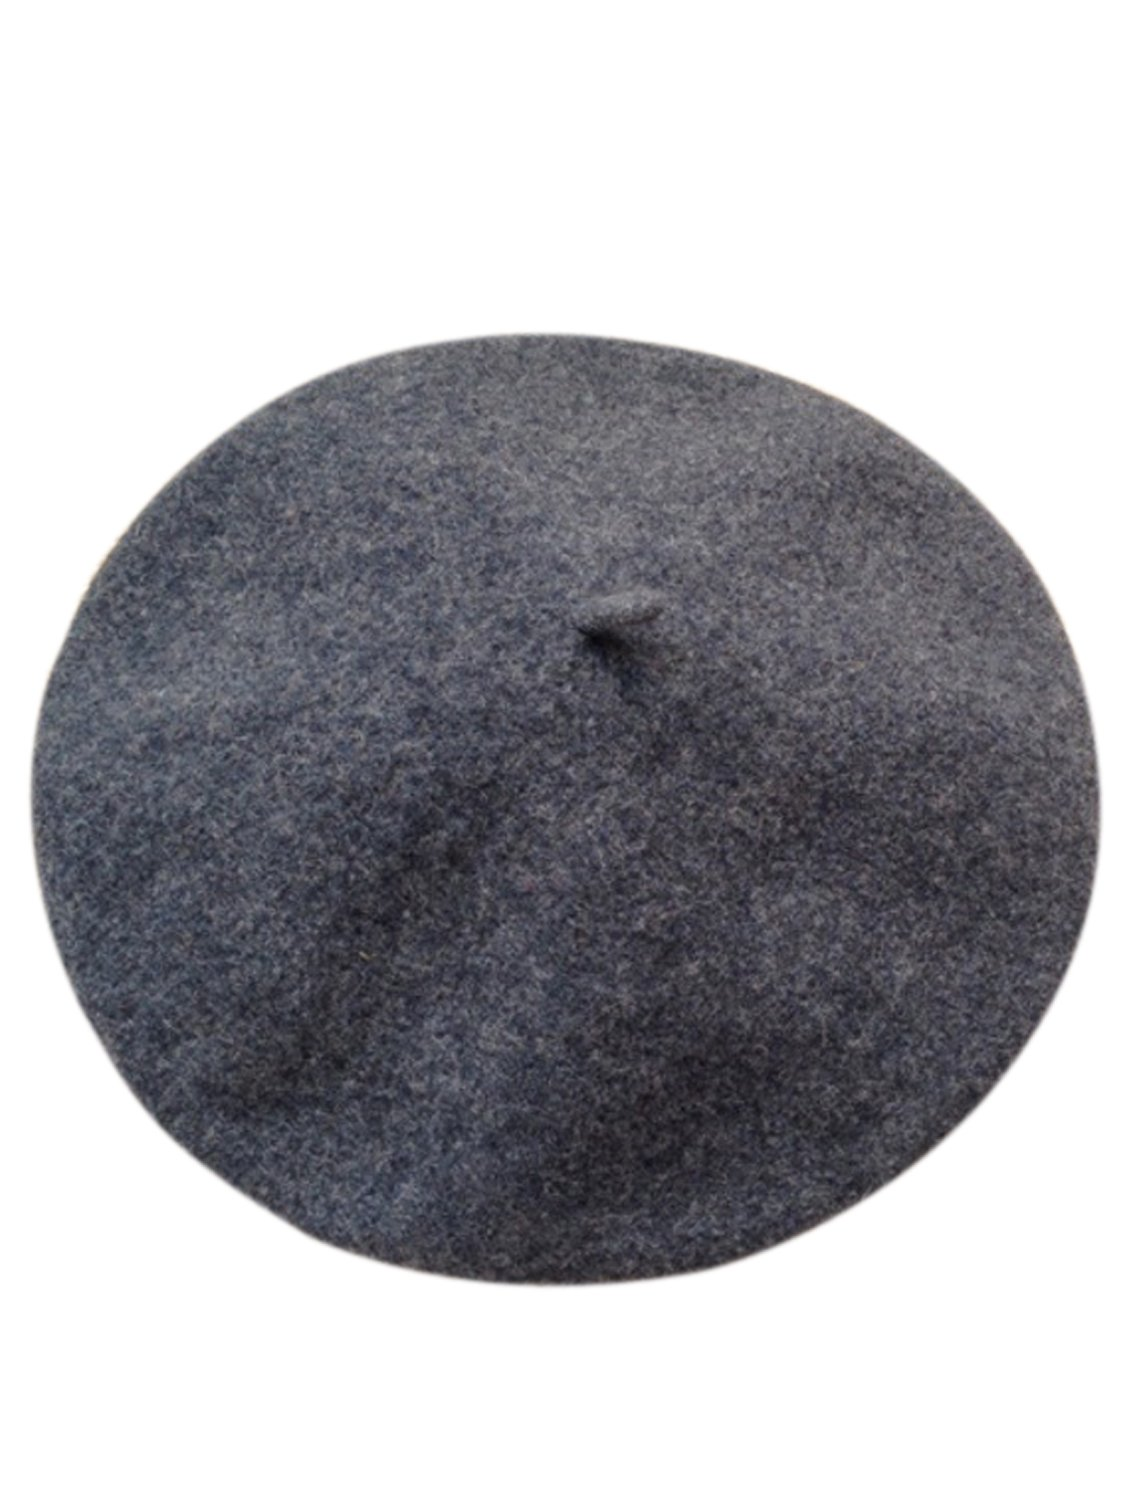 Clothink Wool Beret Hat Classic Solid Color French Beret Gray by Clothink (Image #1)